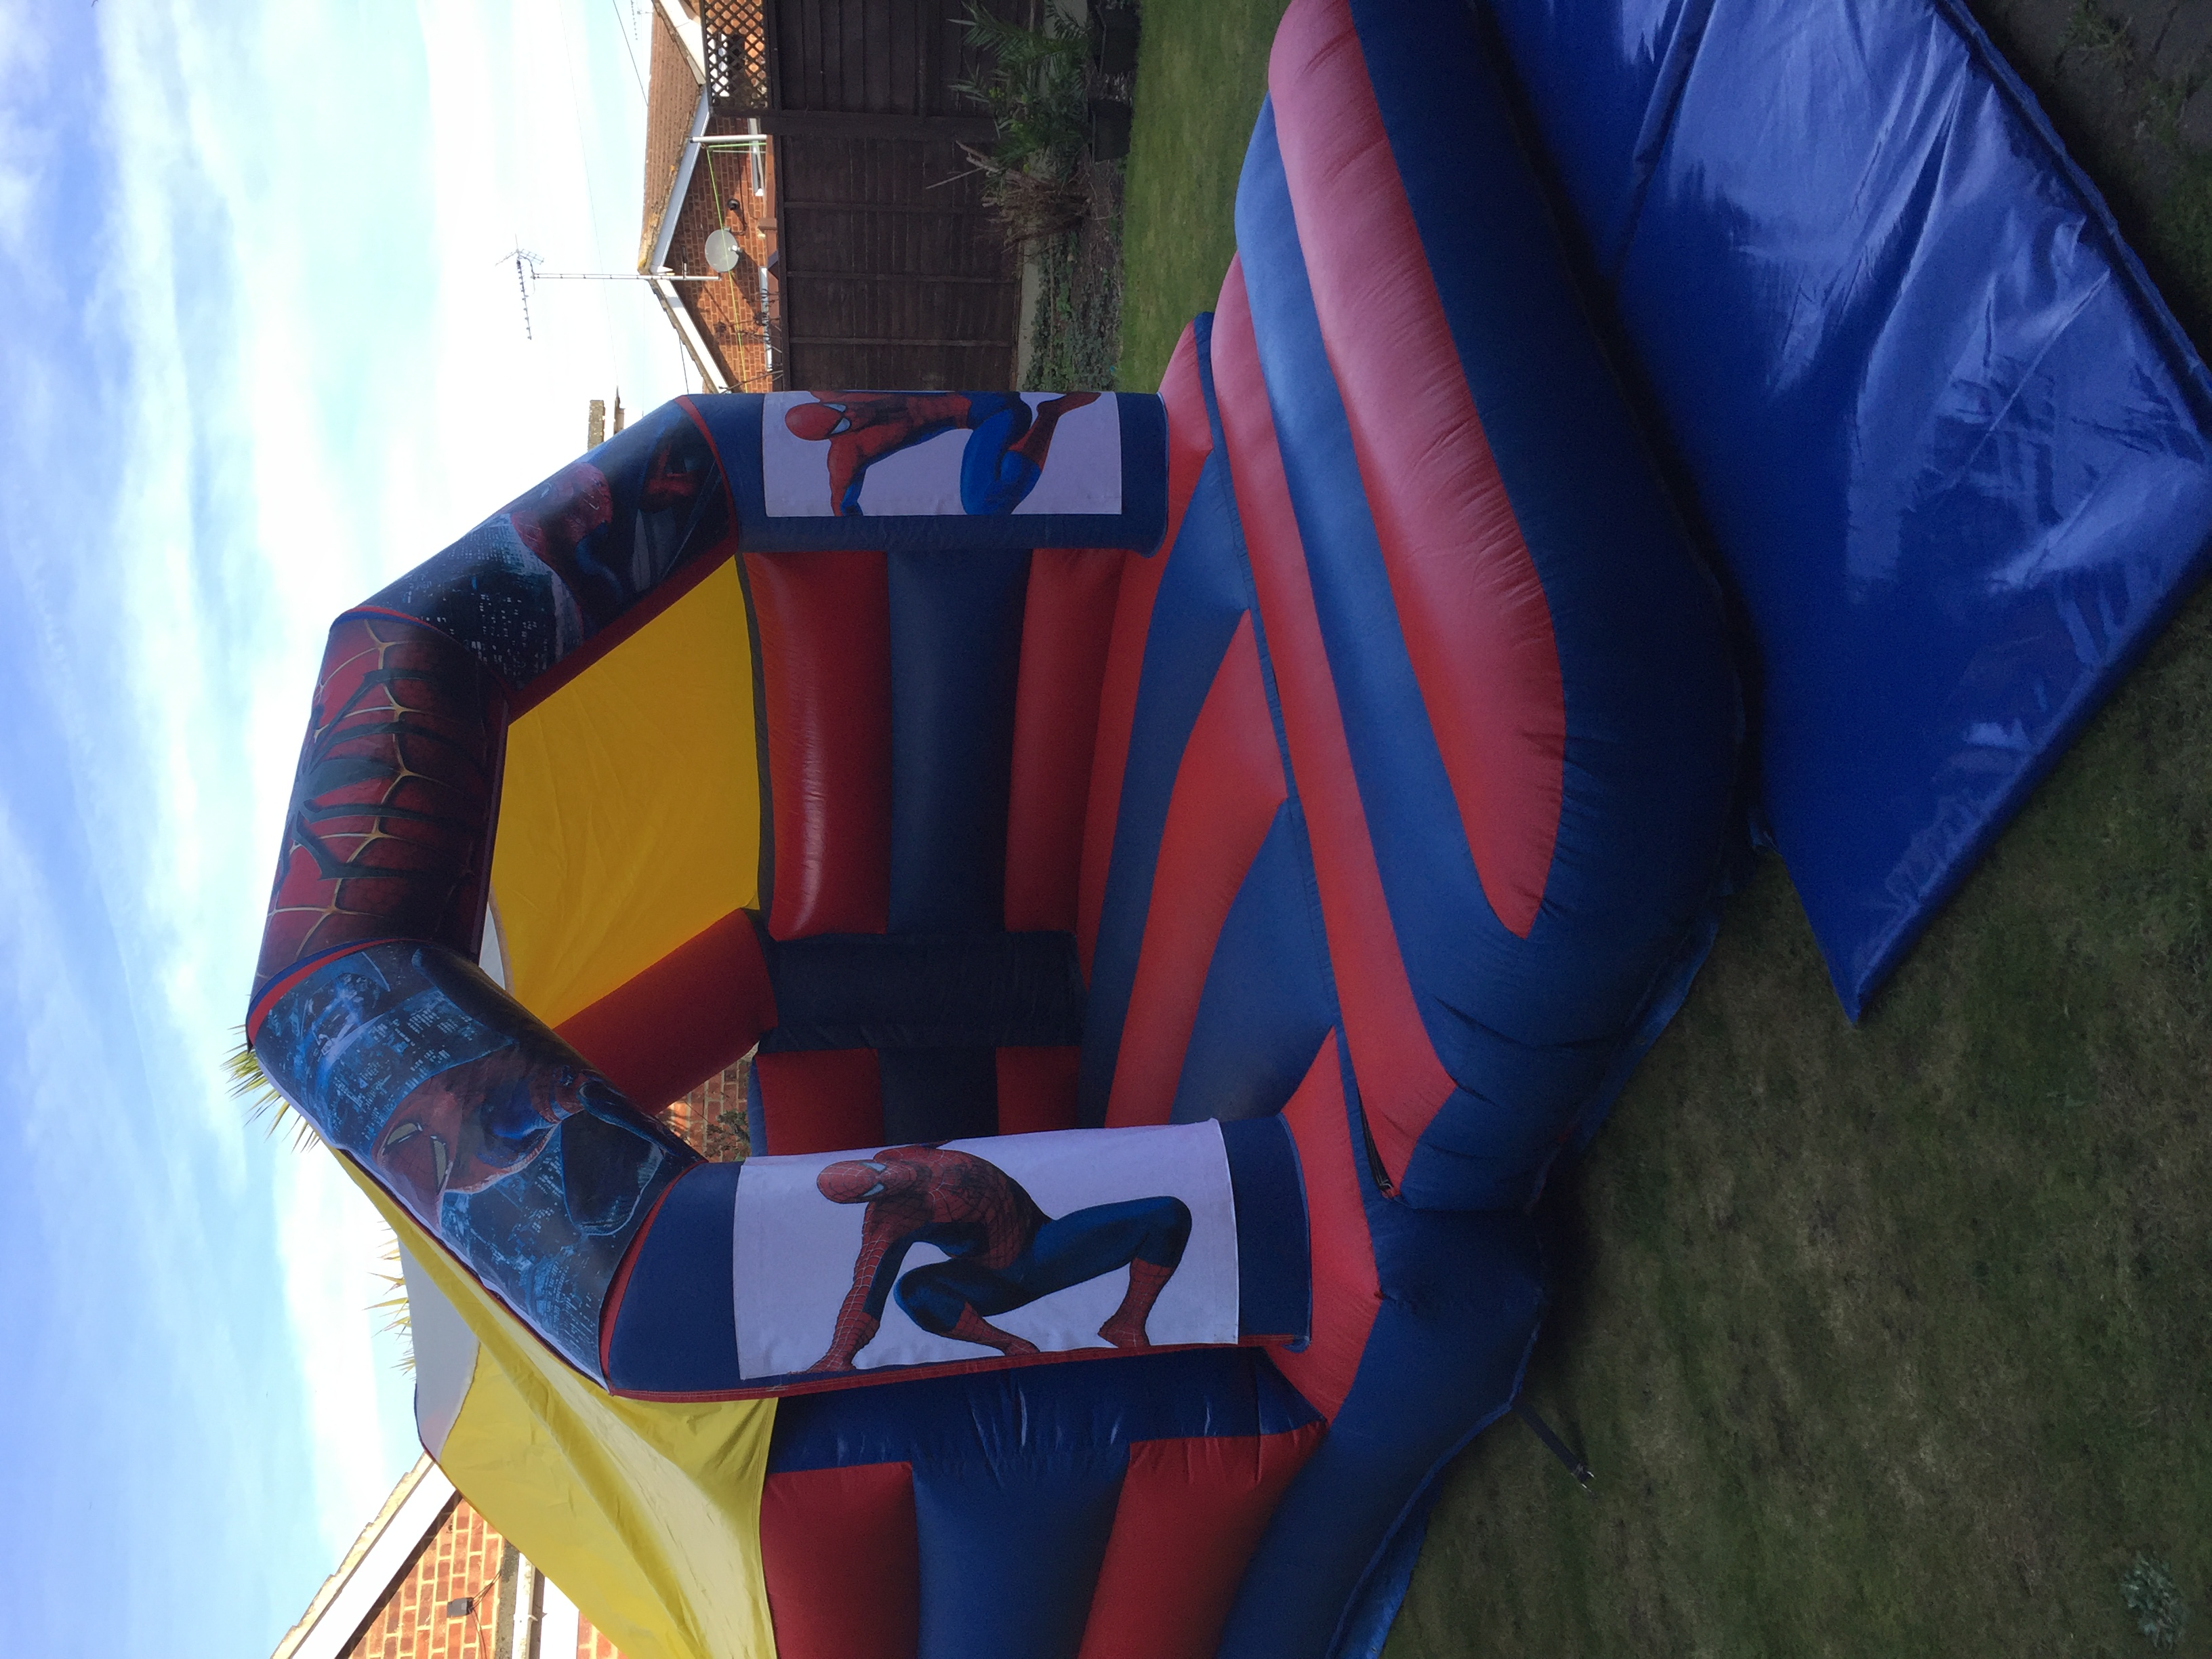 Ace Jump Bouncy Castles and Soft Play